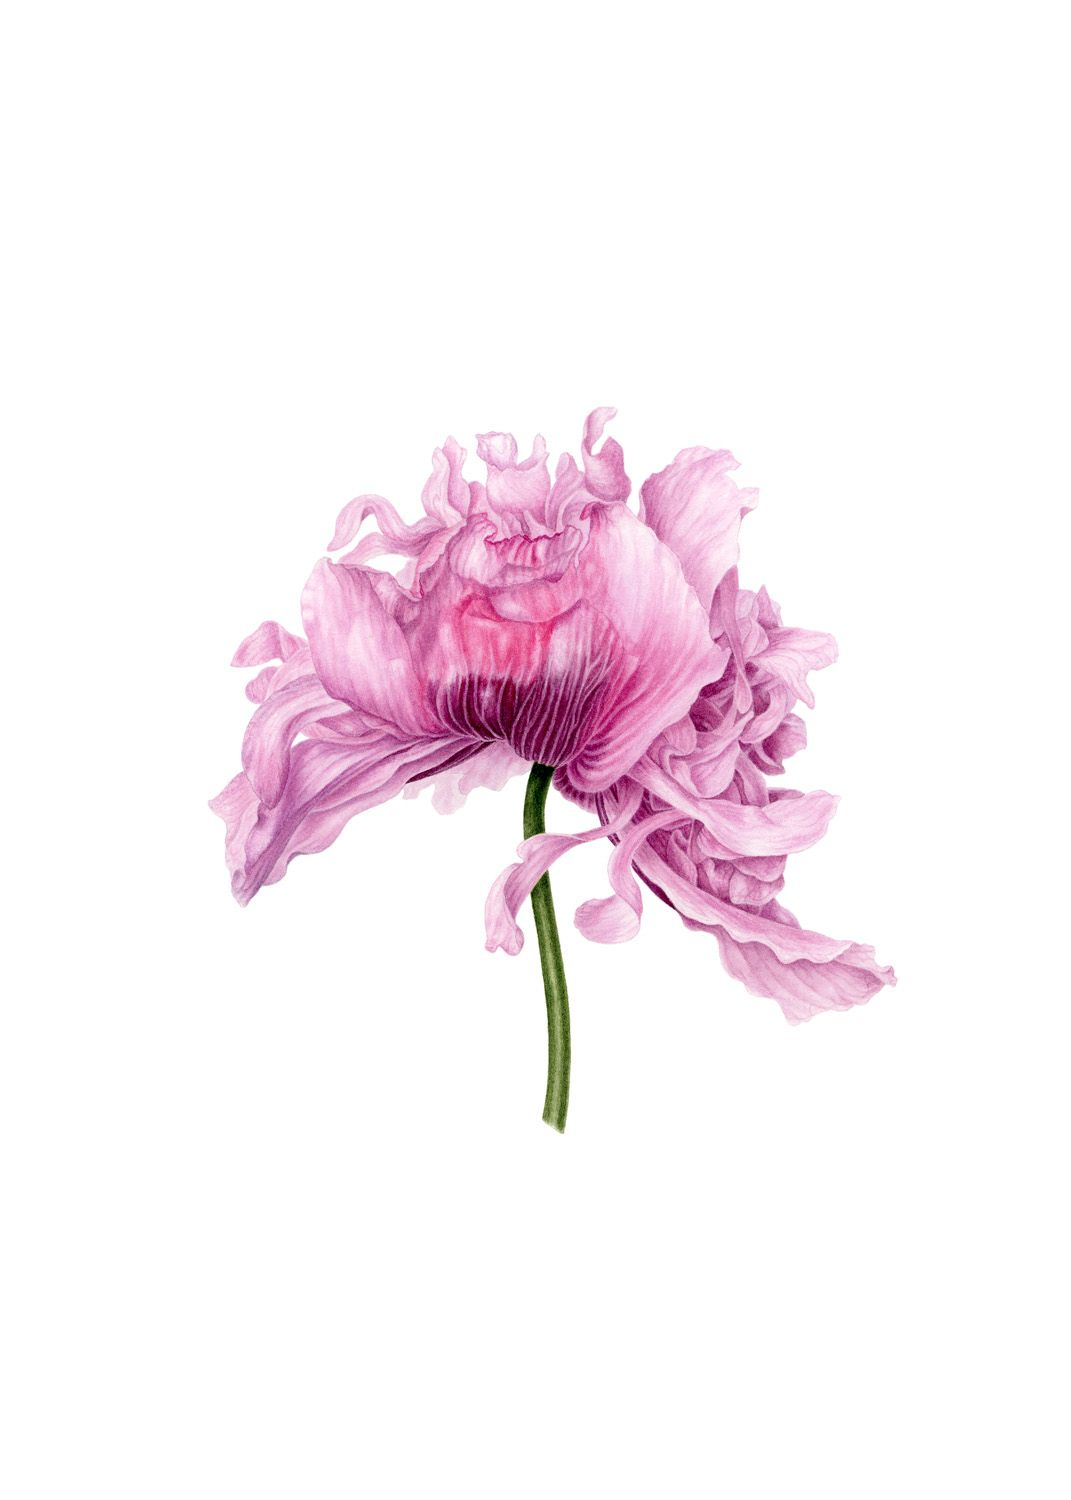 Frilly pink poppy